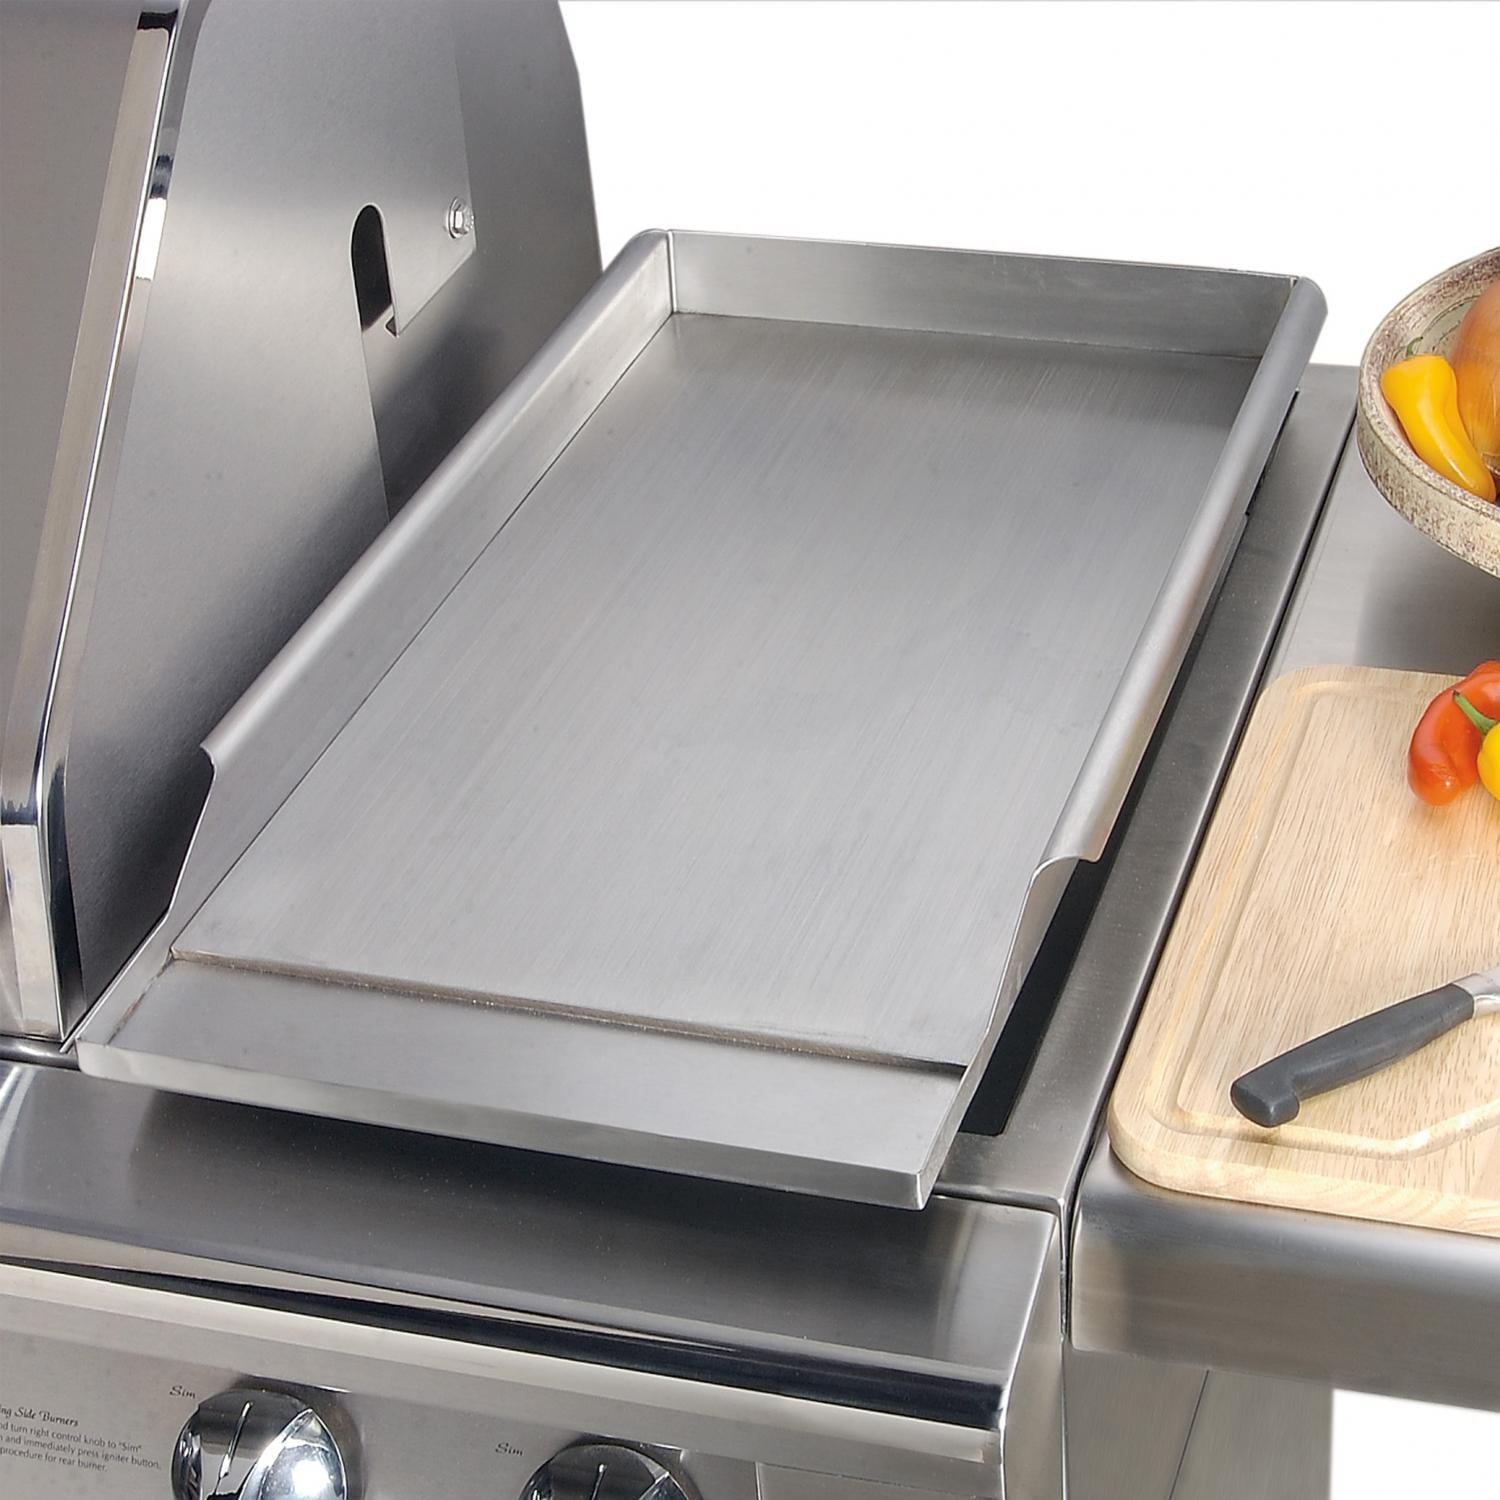 Alfresco Side Burner Griddle